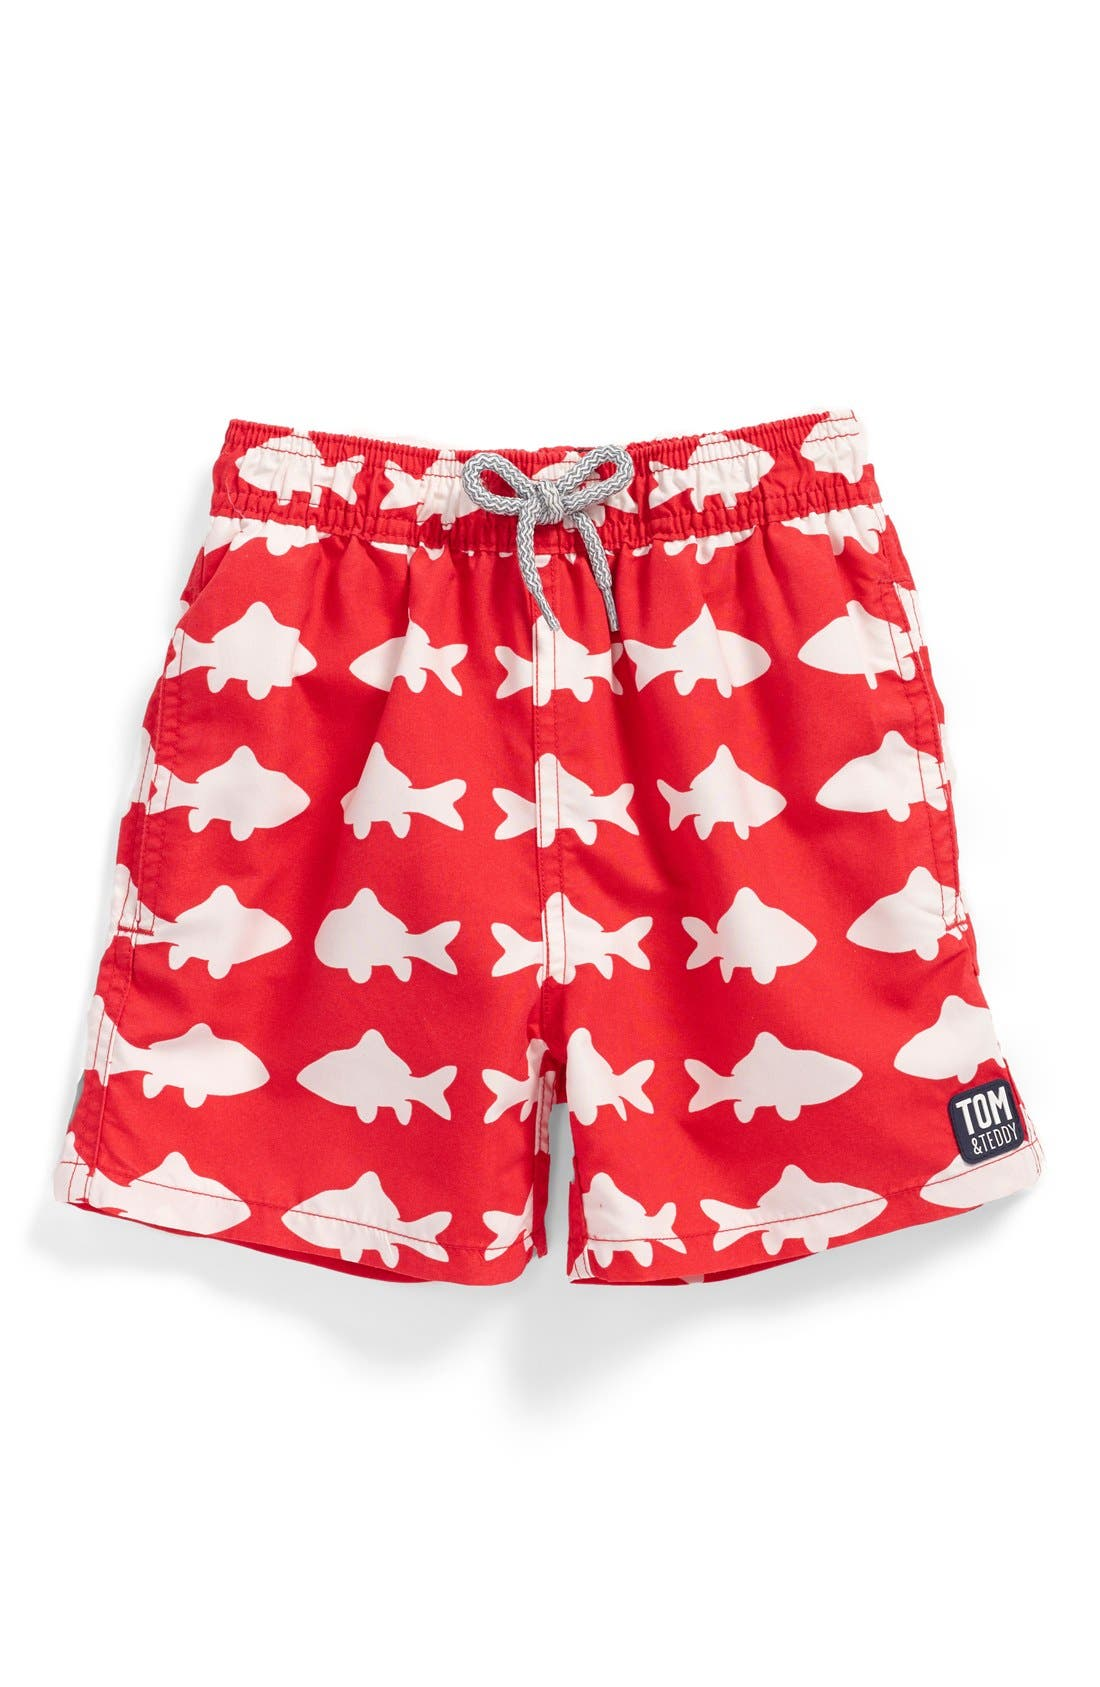 Tom & Teddy 'Fish Pattern' Swim Trunks (Toddler Boys, Little Boys & Big Boys)